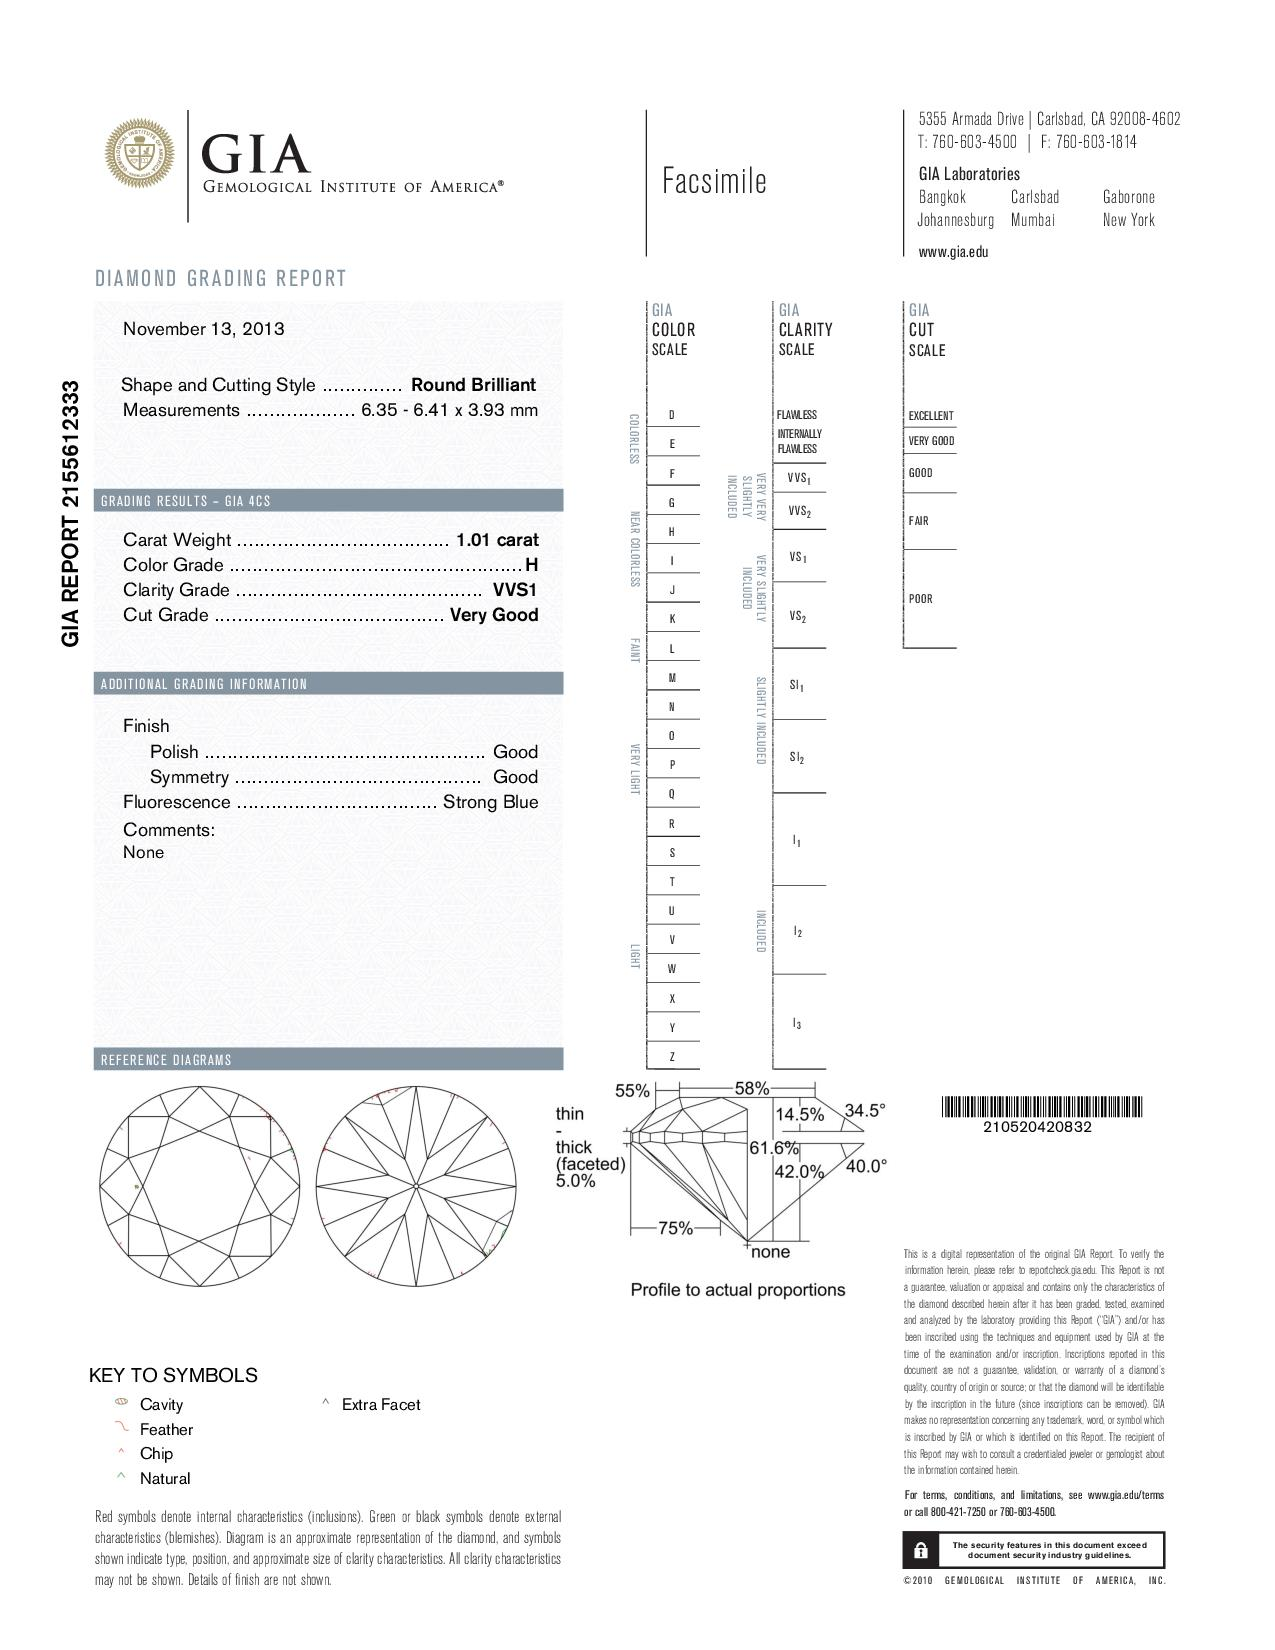 This is a 1.01 carat round shape, H color, VVS1 clarity natural diamond accompanied by a GIA grading report.